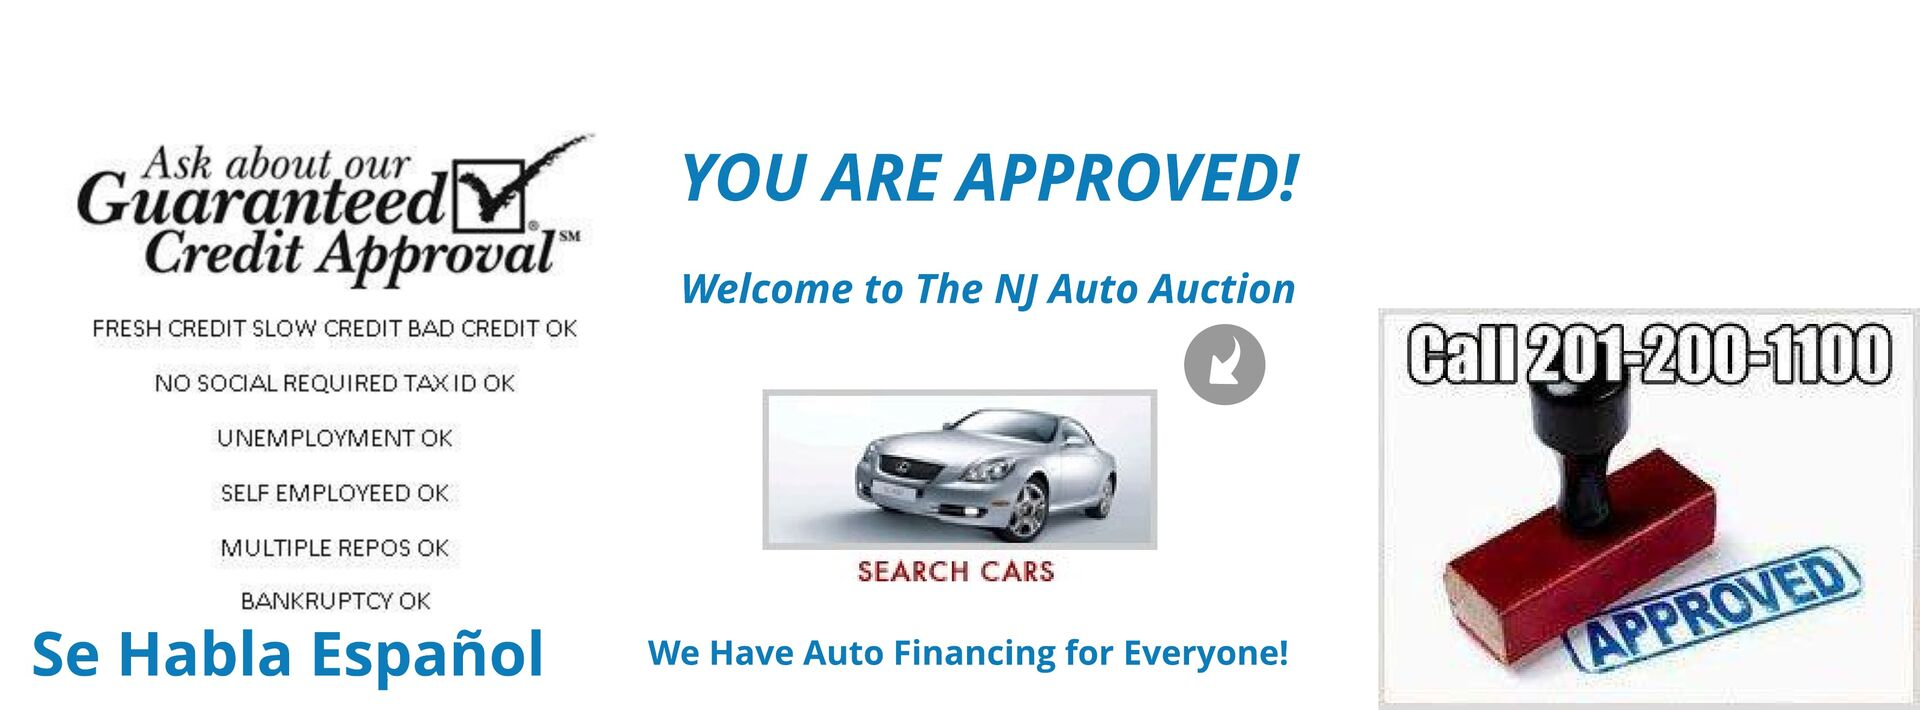 NJ State Auto Auction | Jersey City Used Car Dealer